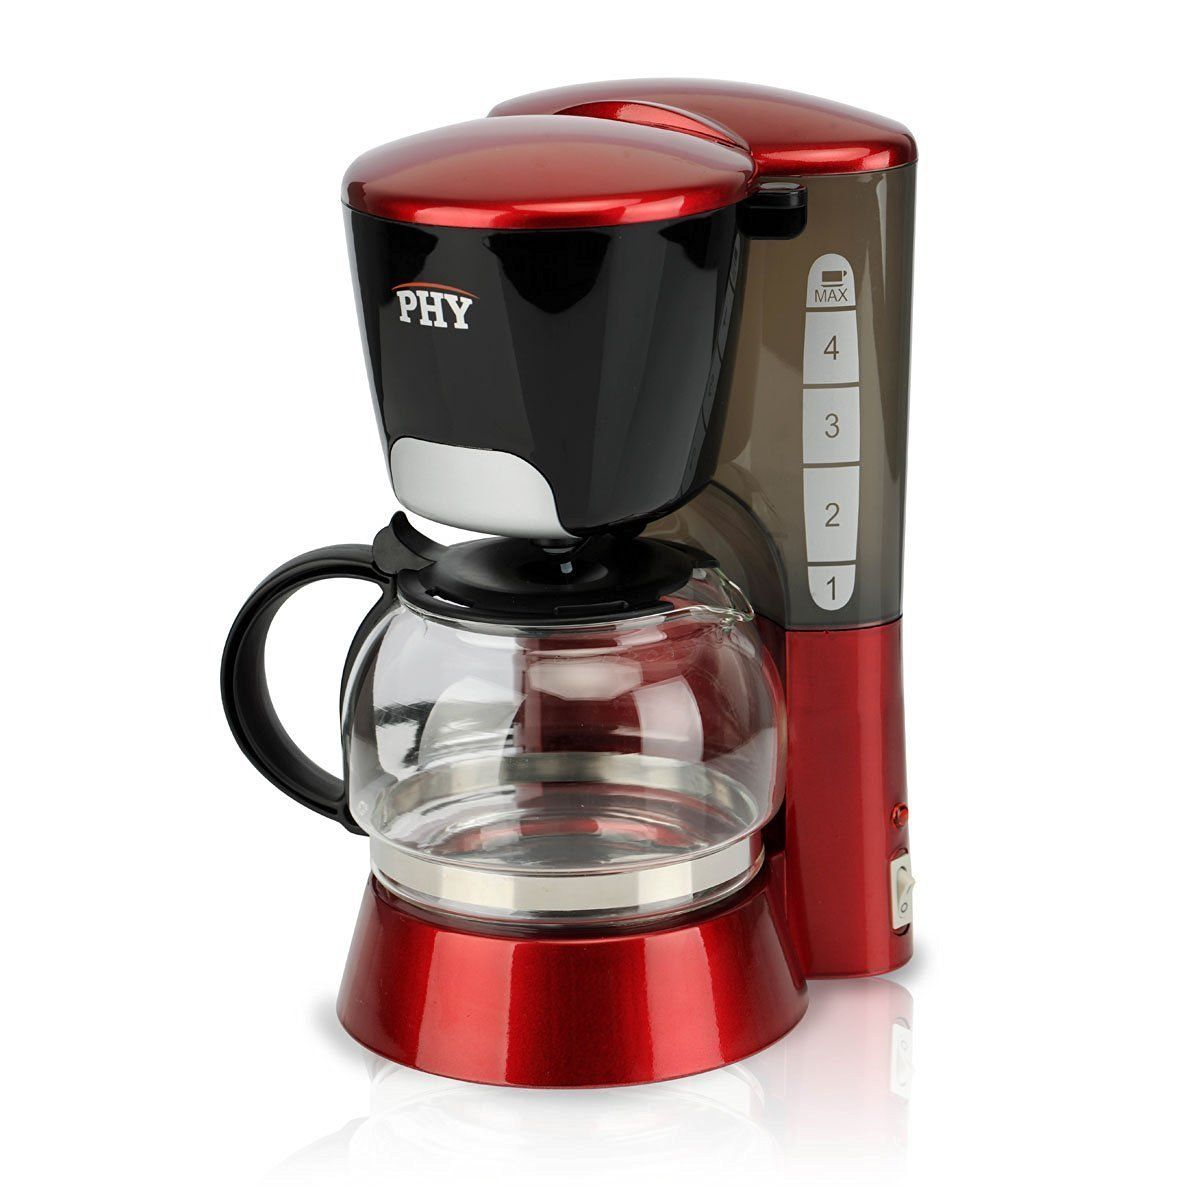 Phy 4 Cup 0 6l Switch Coffee Maker Coffee Maker With Glass Carafe And Permanent Filter And Semi Transparent Wa Coffee Maker 4 Cup Coffee Maker Glass Carafe